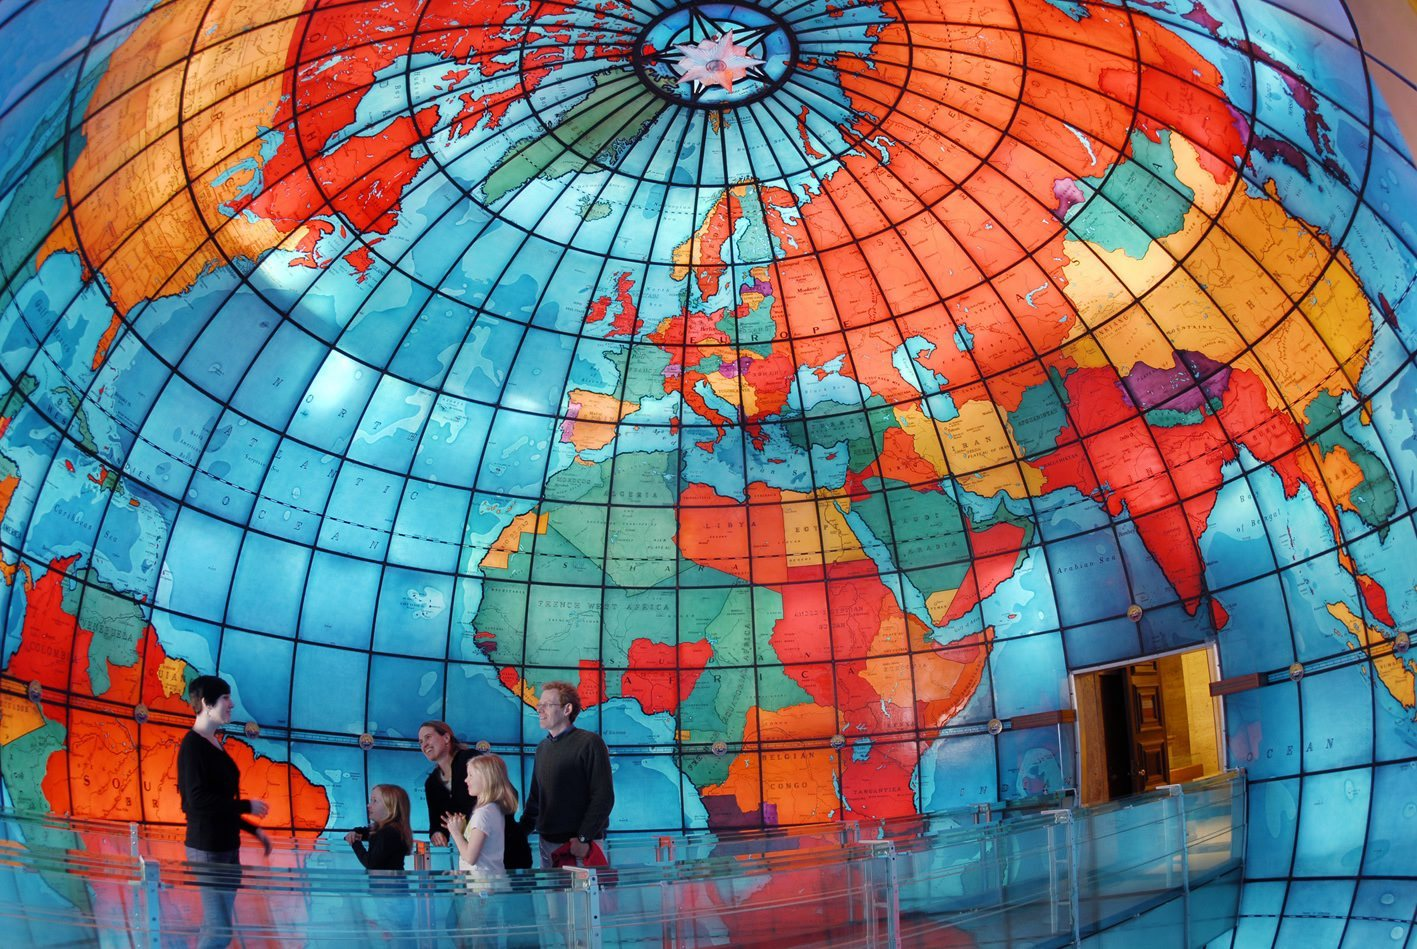 Discover a lost world at the Mapparium